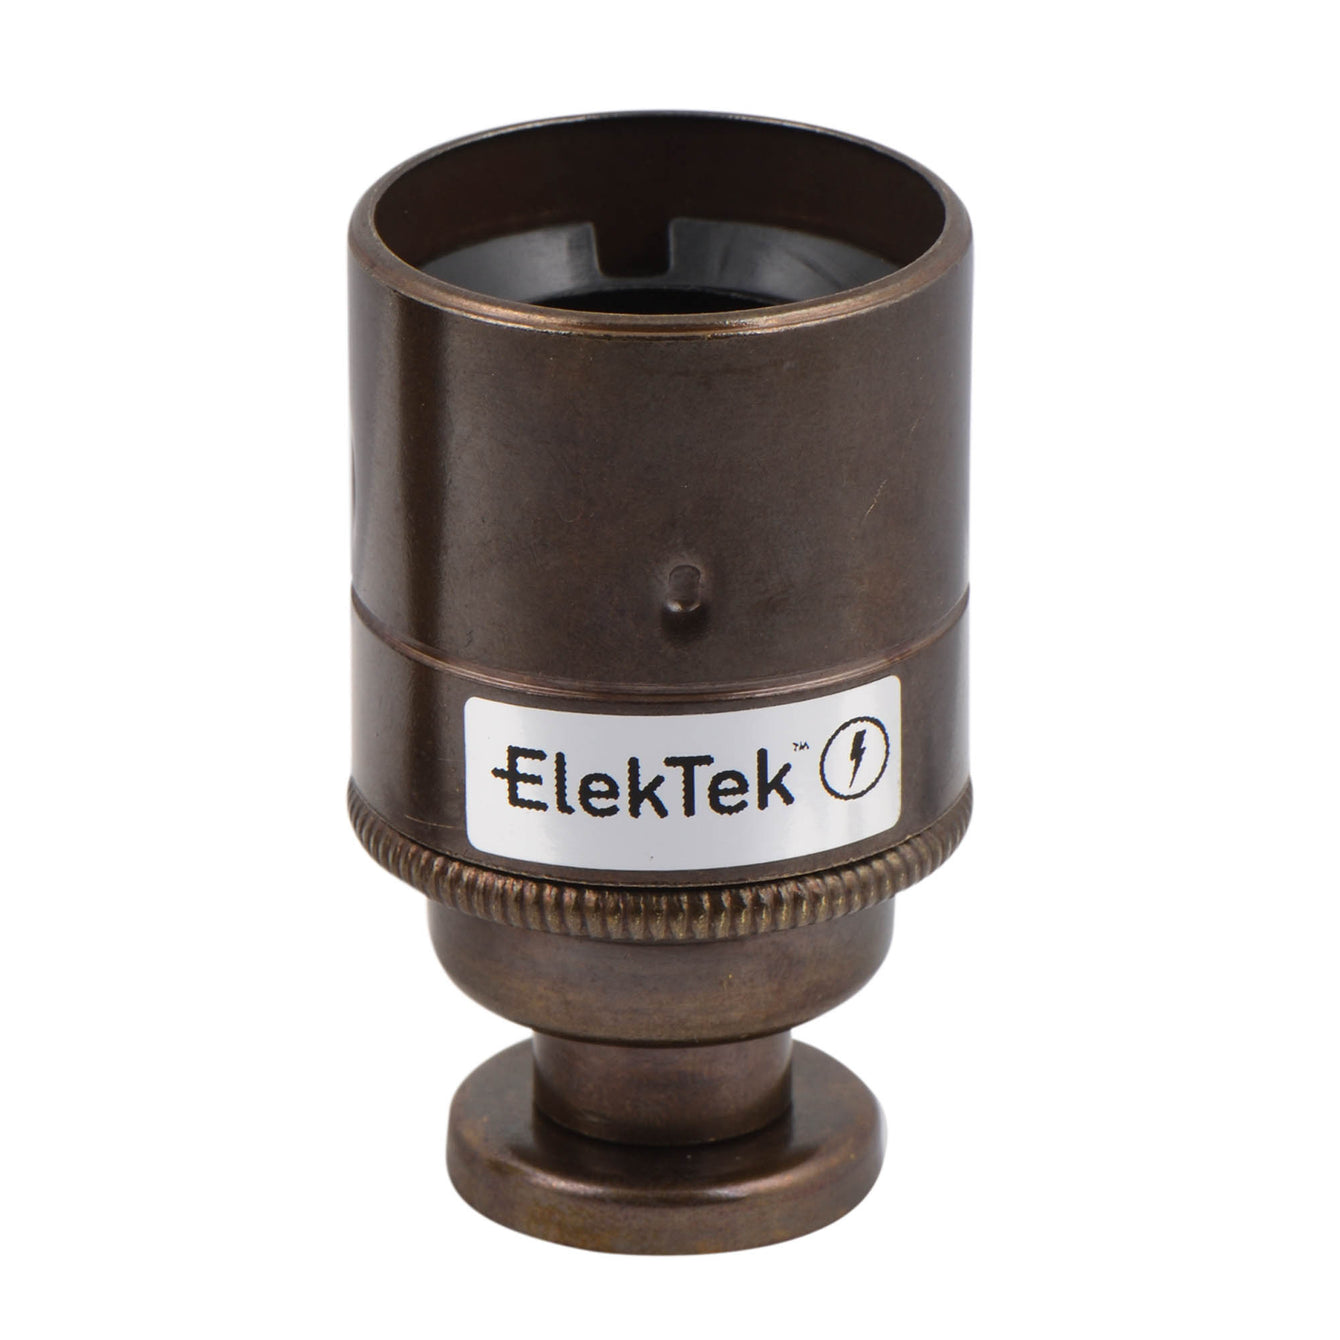 ElekTek ES Edison Screw E27 Lamp Holder Plain Skirt With Back Plate Cover and Screws Brass - Buy It Better Brushed Antique